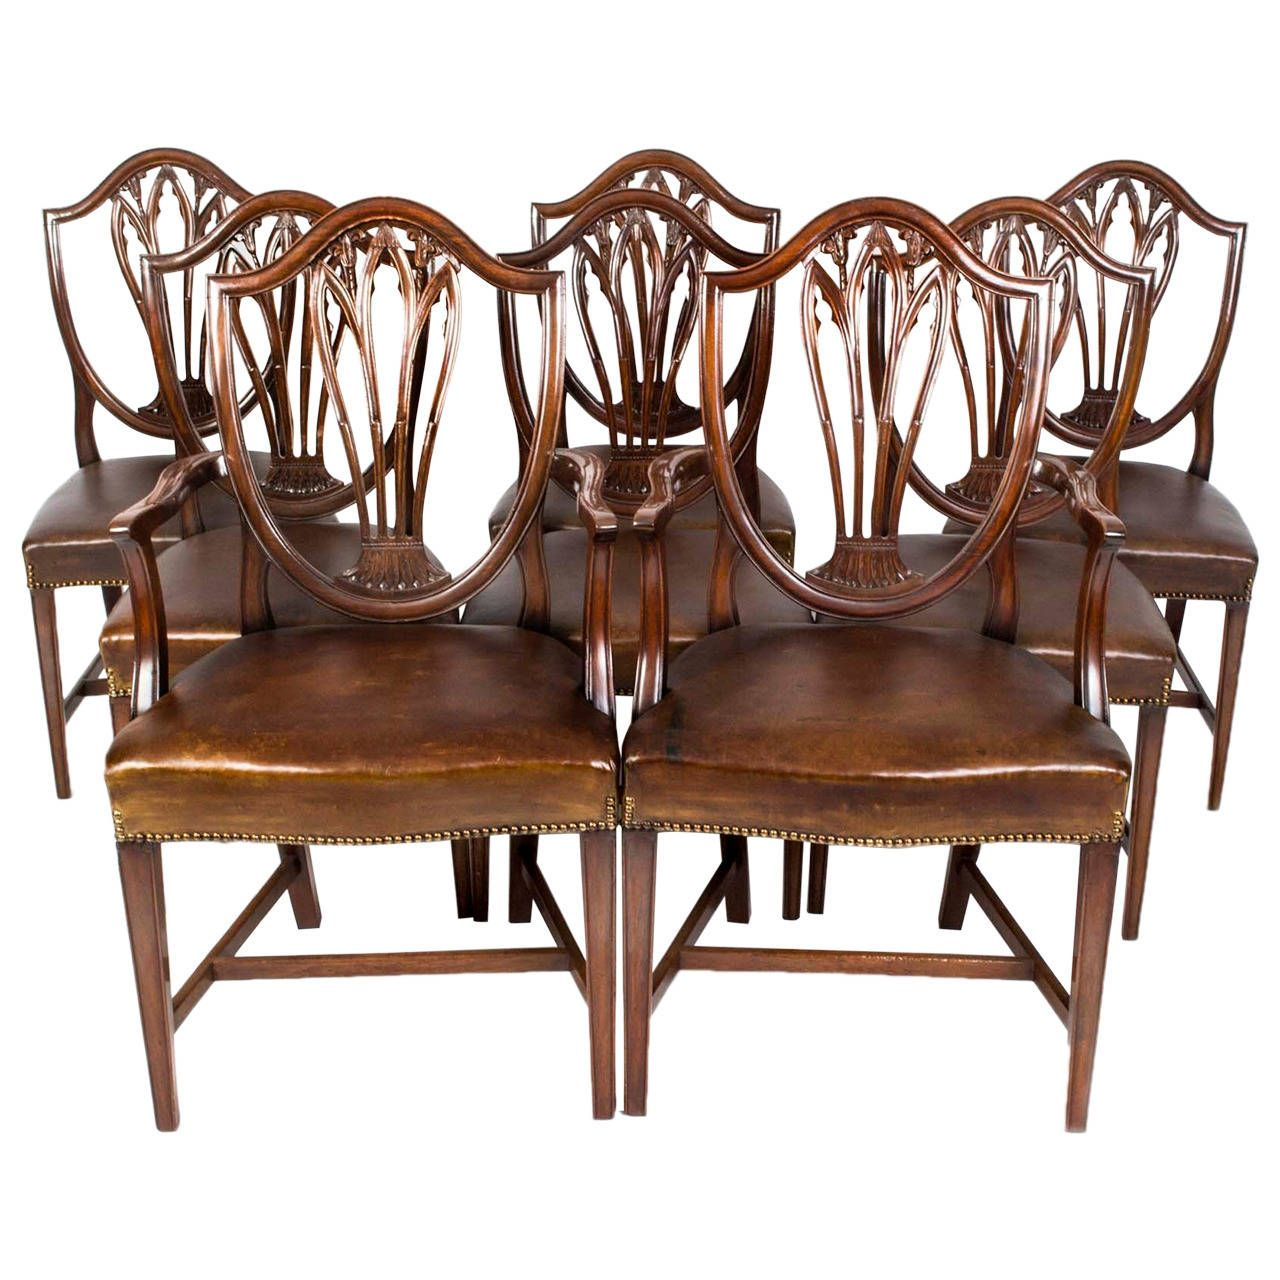 Antique Set 8 English Hepplewhite Dining Chairs c 1900. Antique Set 8 English Hepplewhite Dining Chairs c 1900   Edwardian